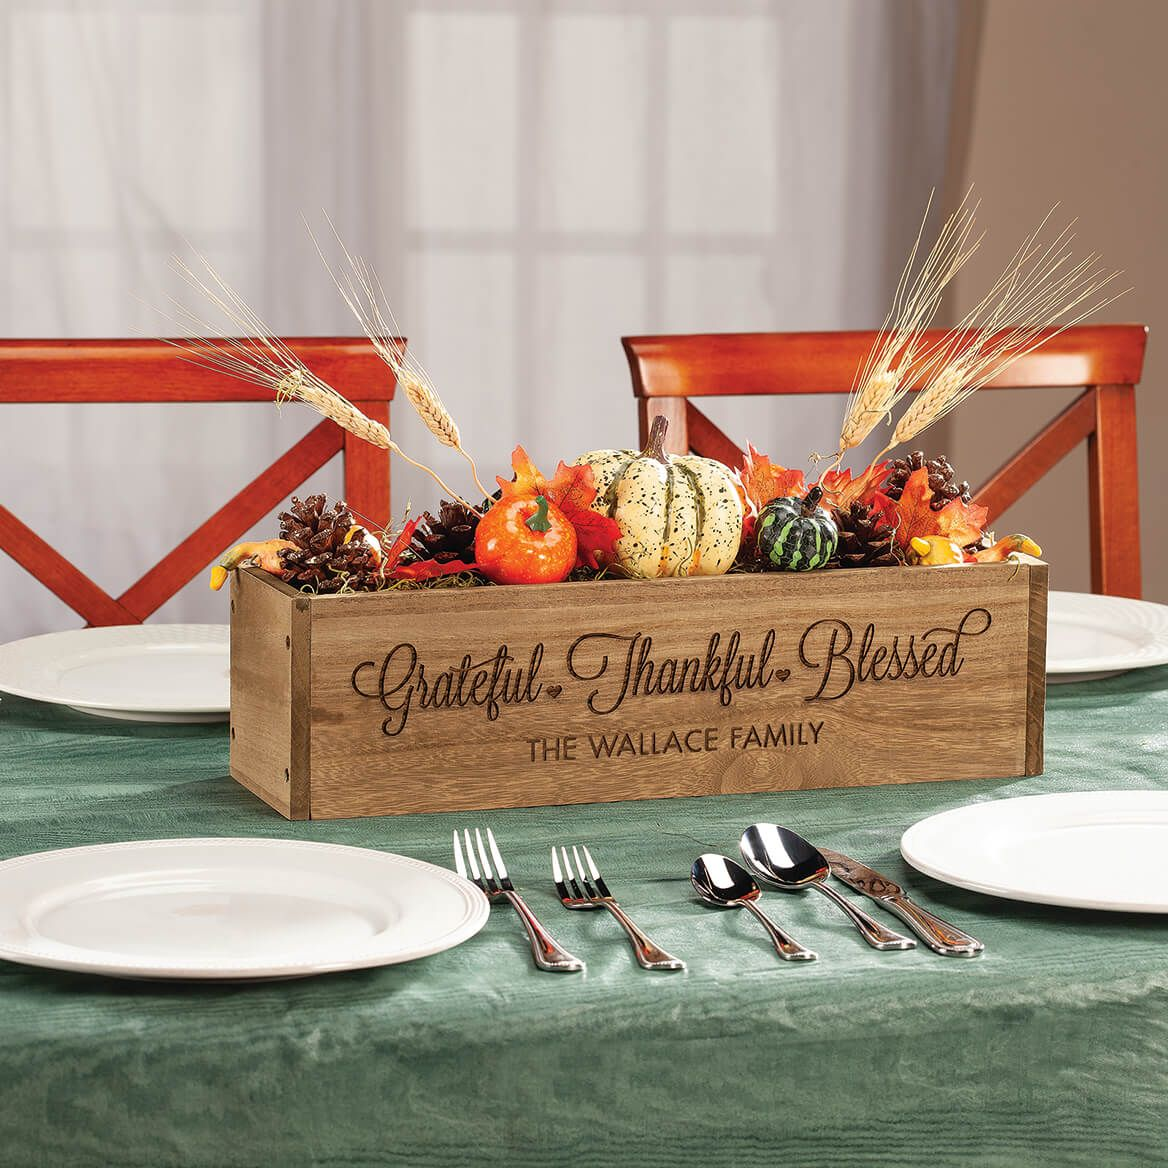 Personalized Wooden Planter Box, Grateful Thankful Blessed-369252